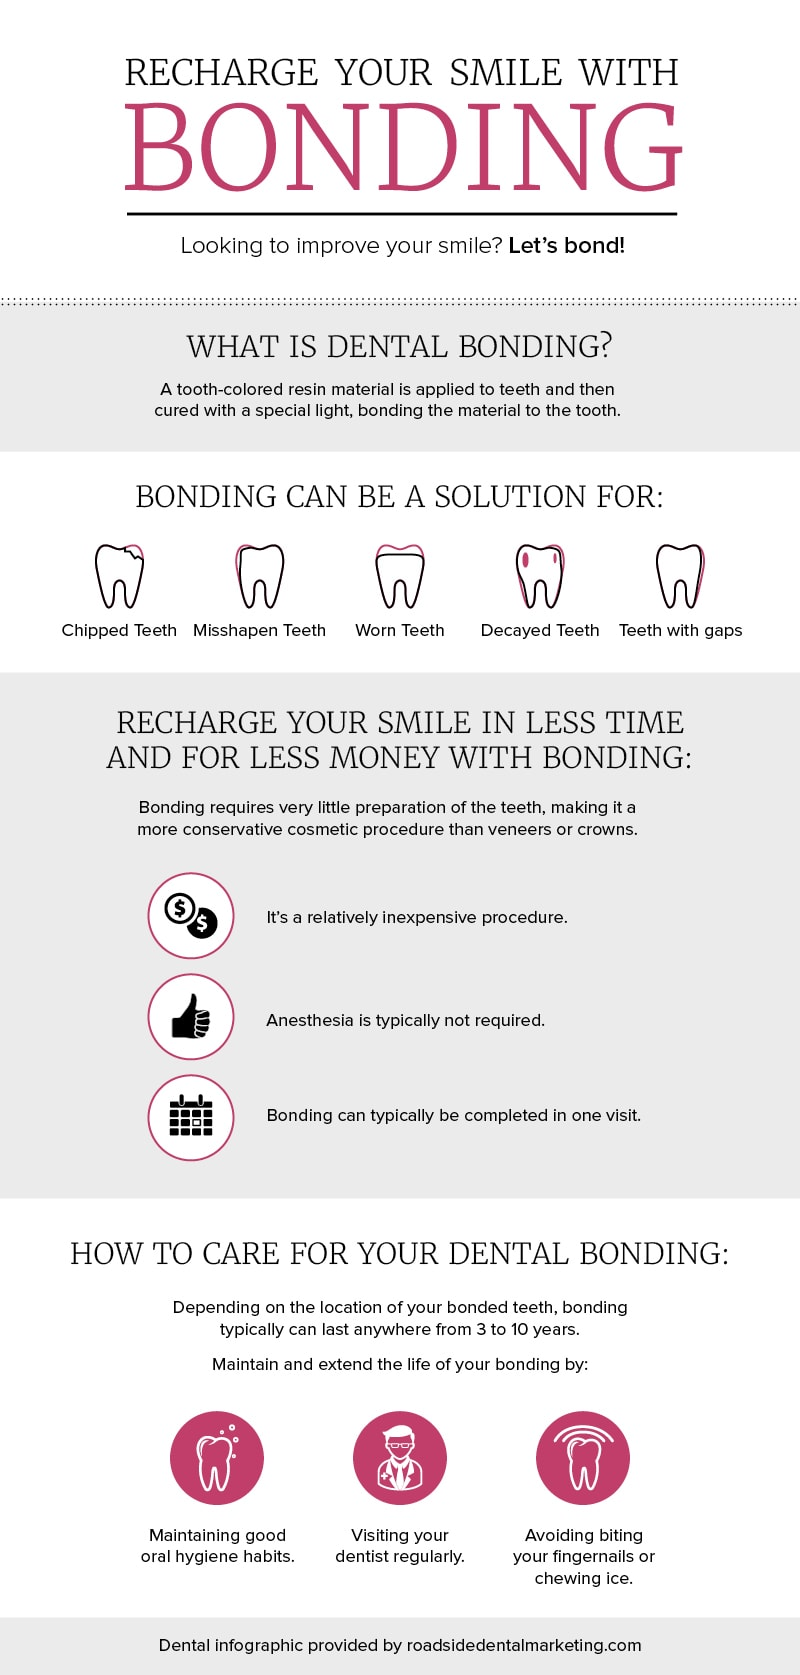 Recharge Your Smile with Dental Bonding